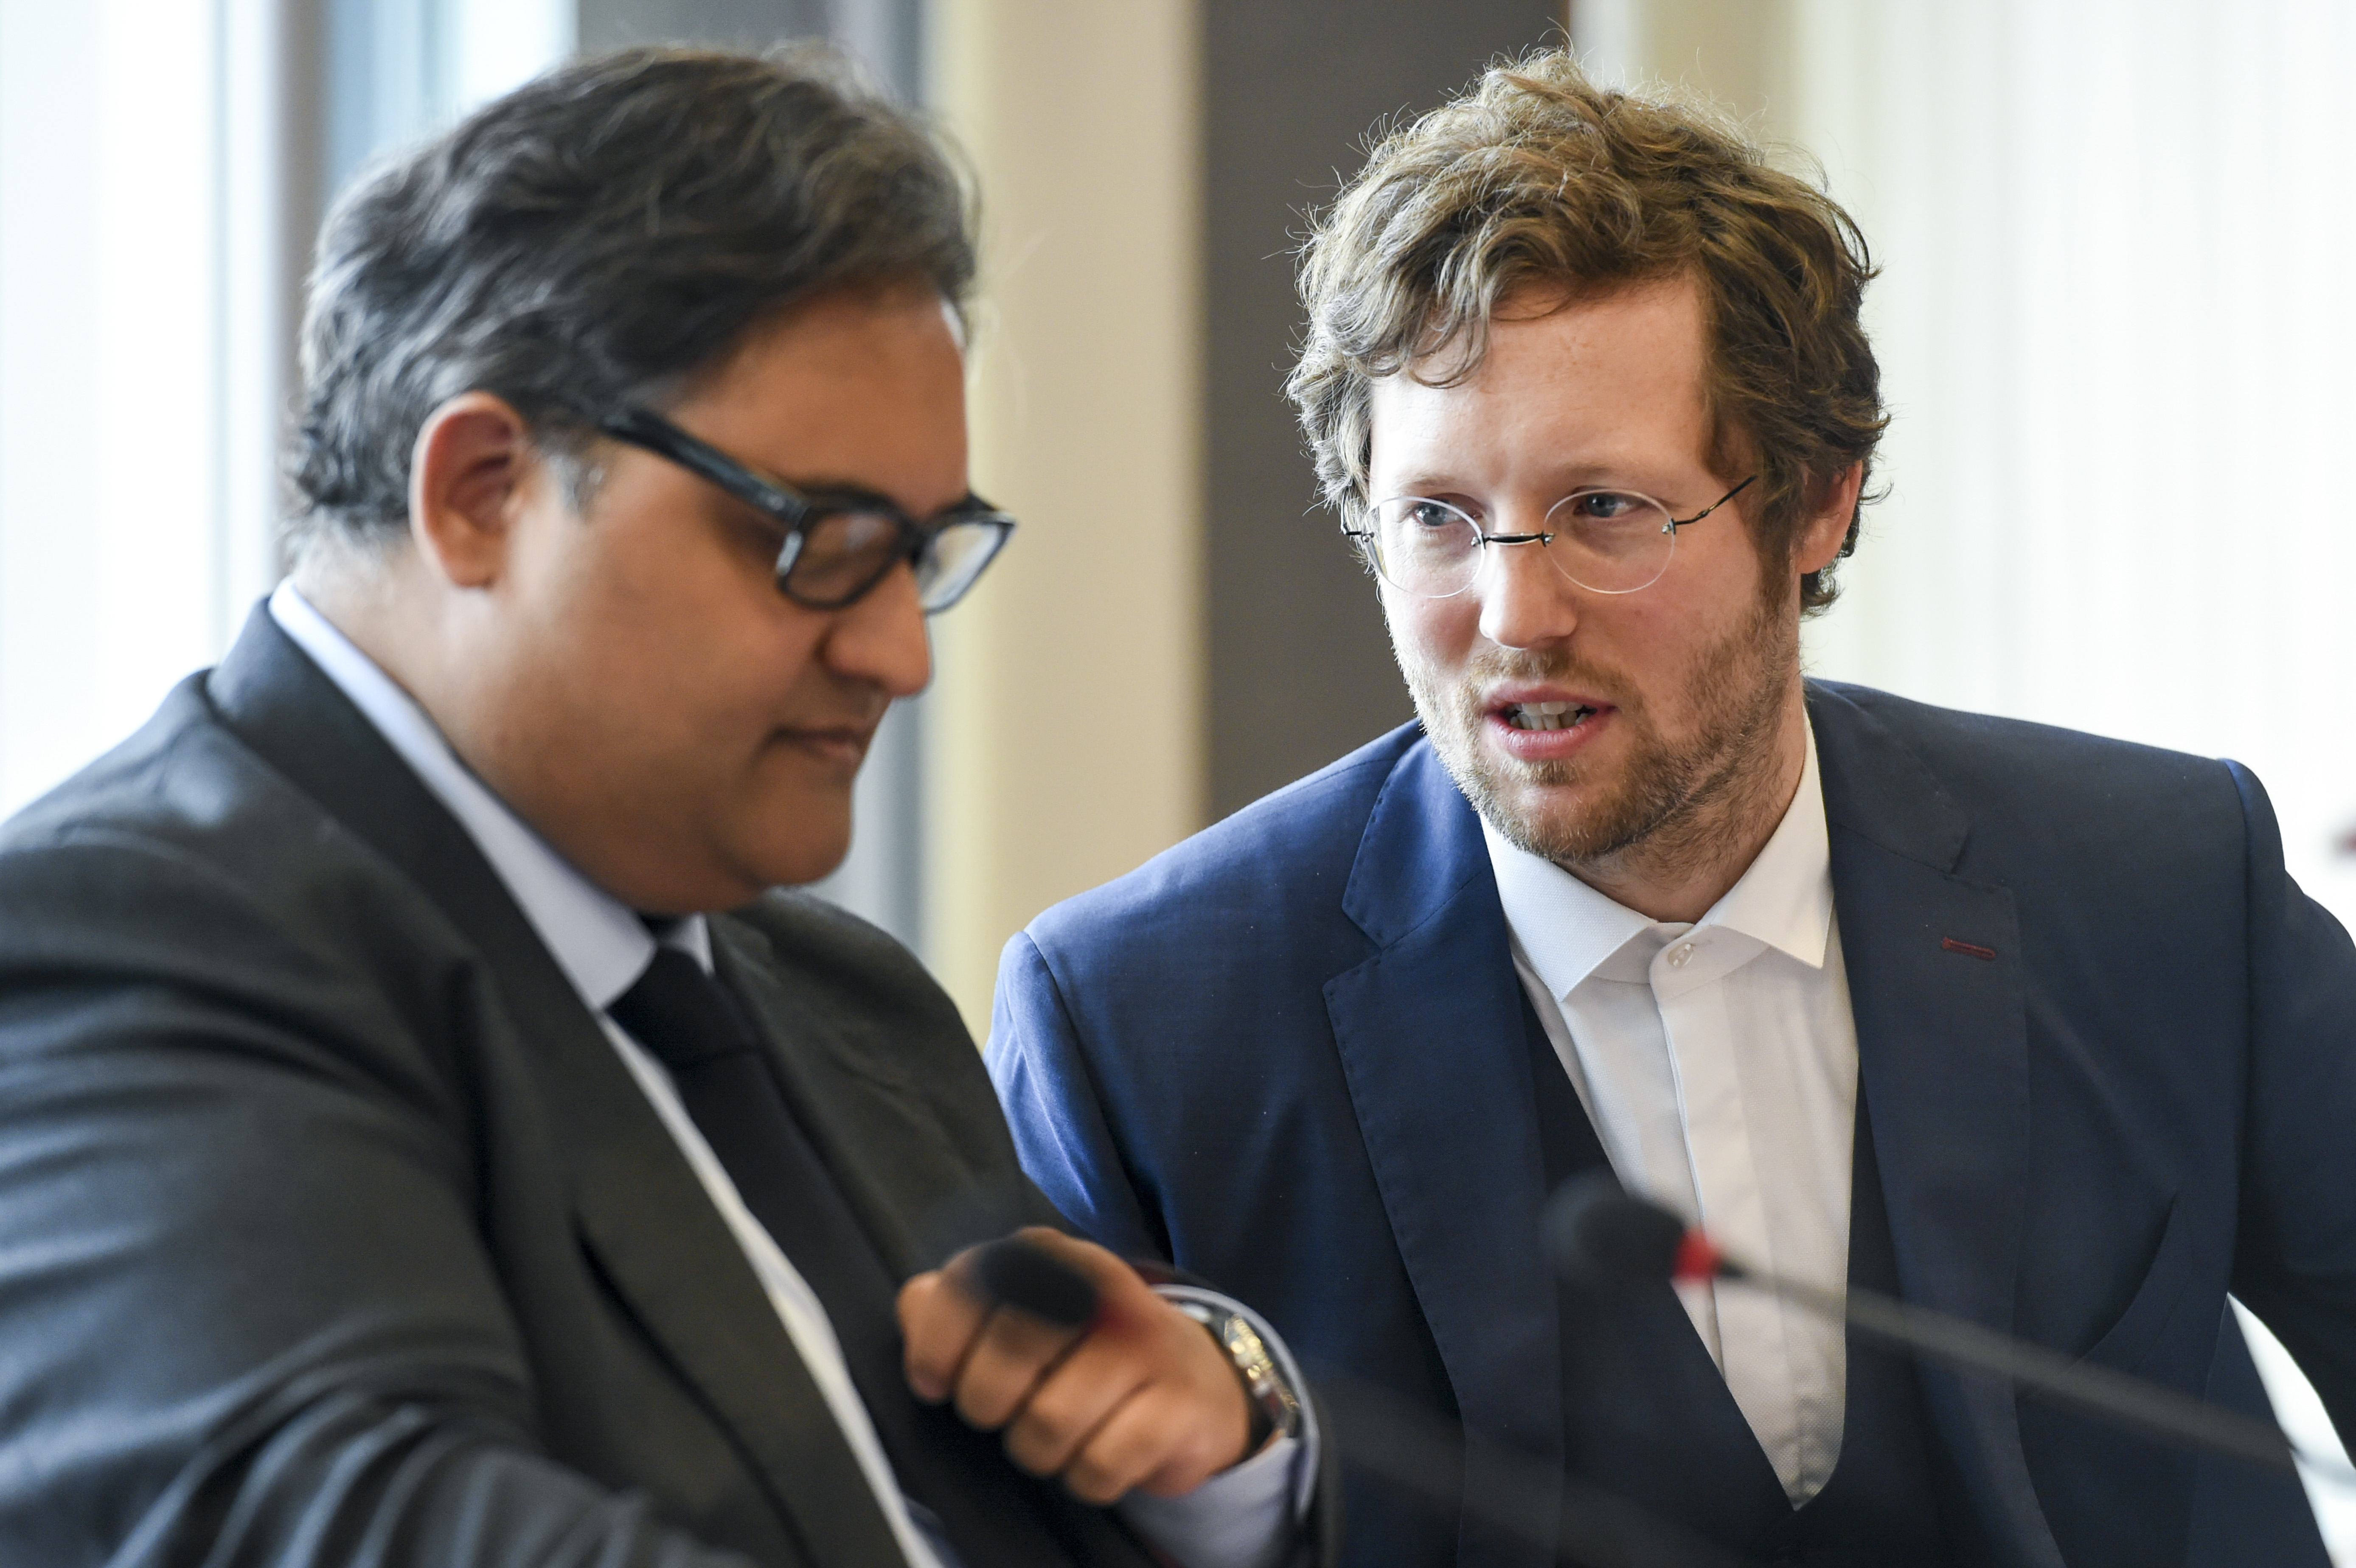 LIBE chair Claude Moraes (S&D) and German MEP Jan Philipp Abrecht (Green), rapporteur on the data protection regulation